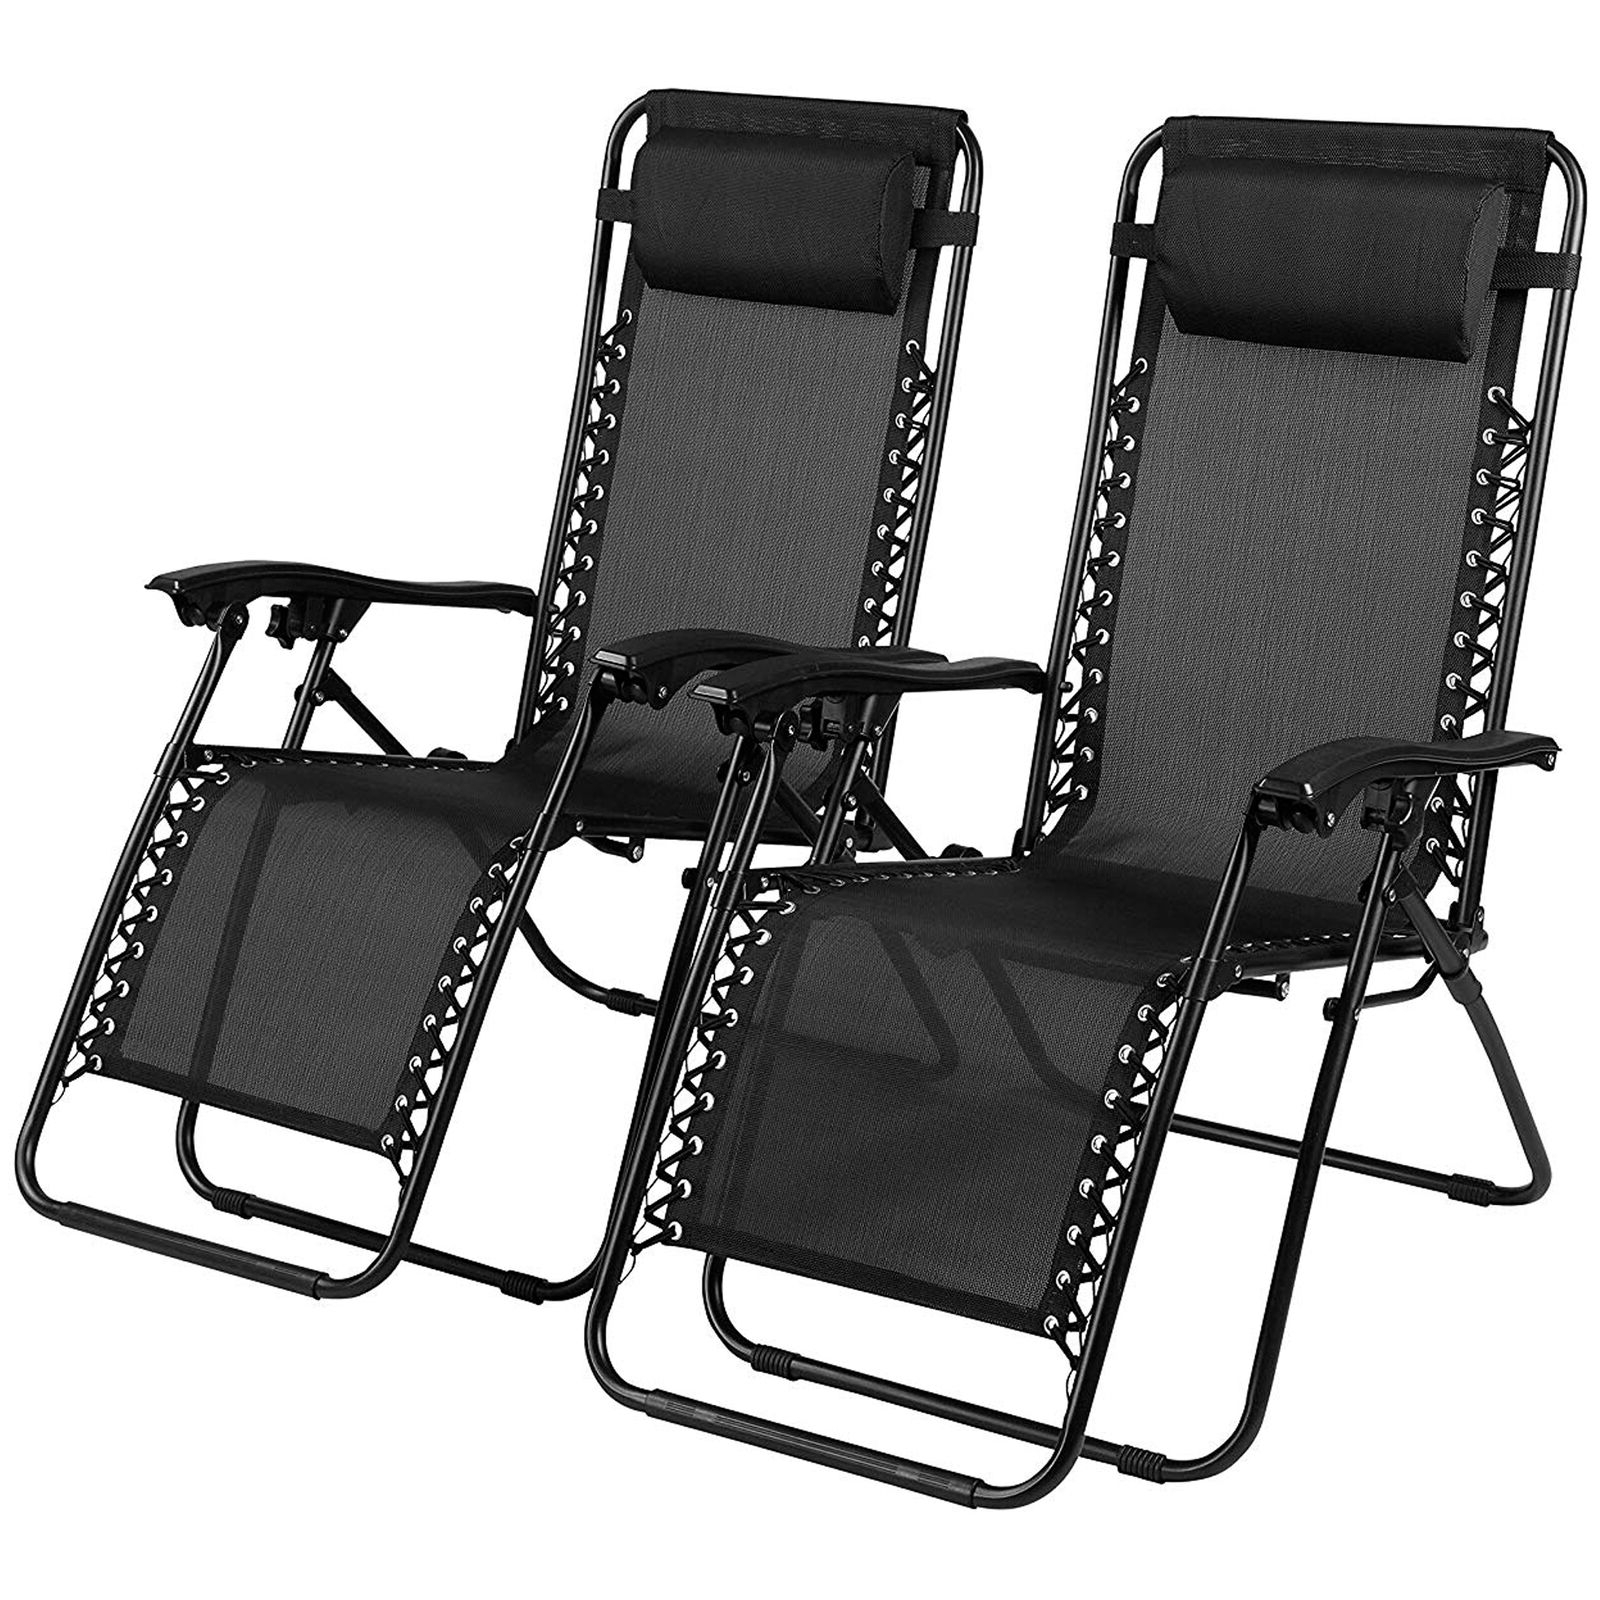 Zero Gravity Chair Sun Lounger Outdoor Garden Folding Reclining Adjustable  X 2 Throughout Favorite Deluxe Padded Chairs With Canopy And Tray (View 25 of 25)